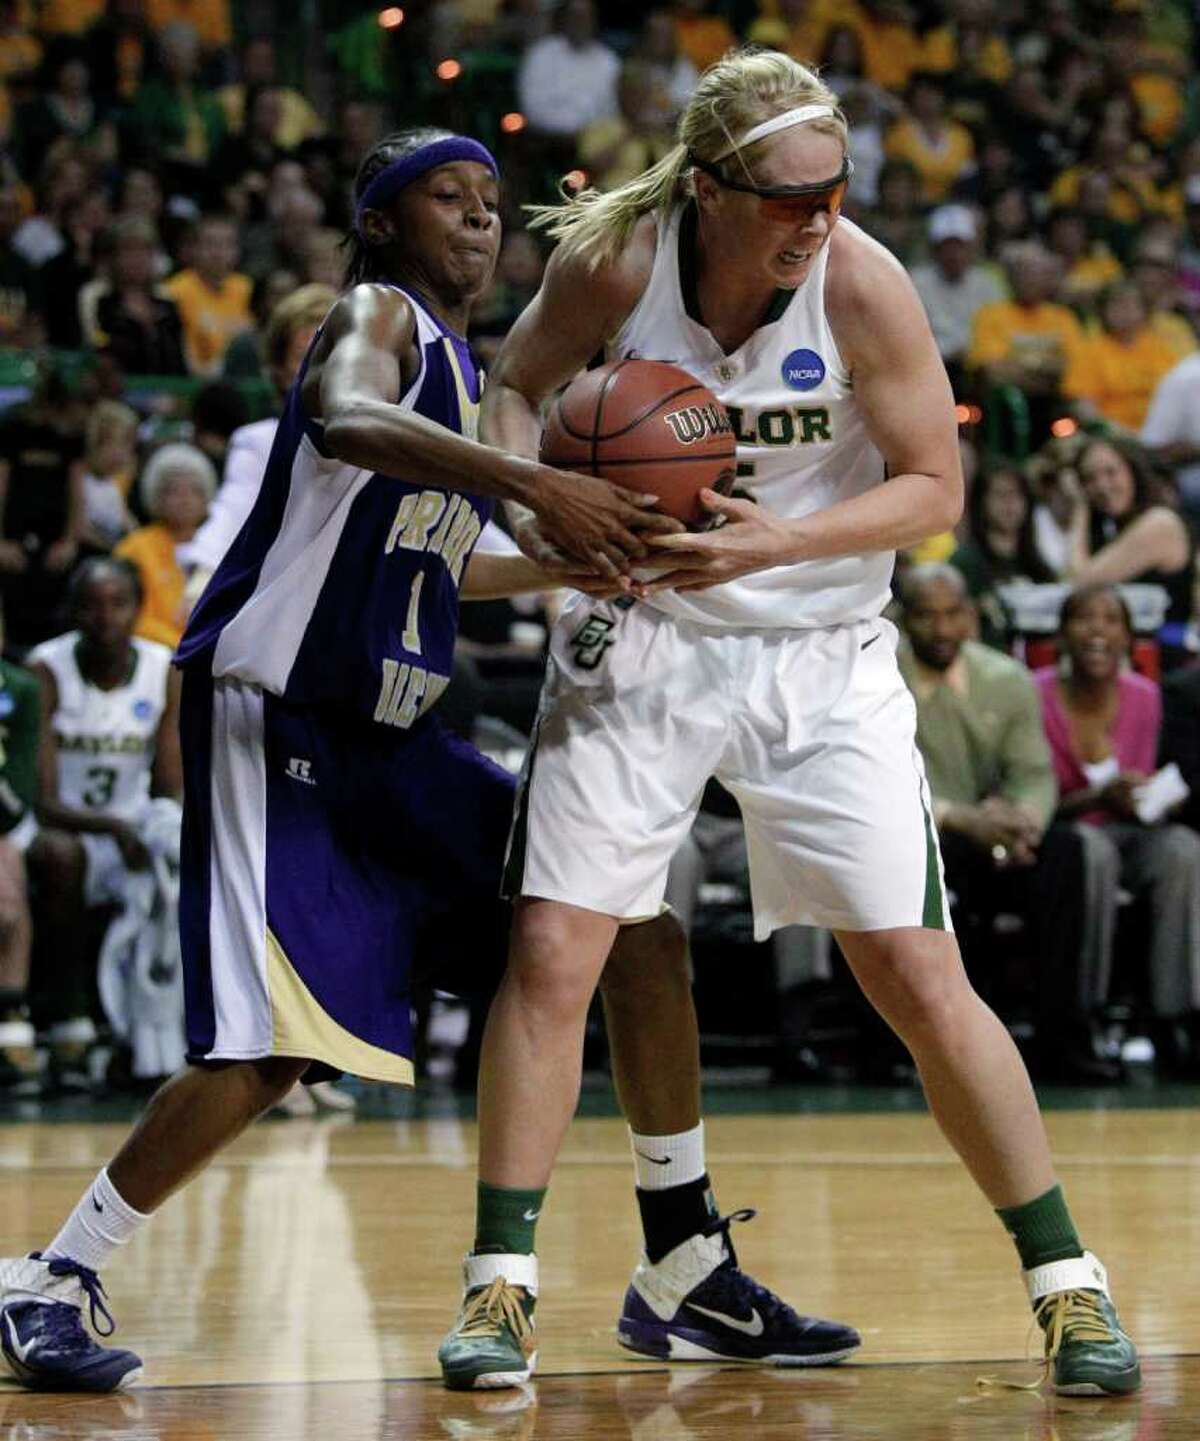 Baylor guard Melissa Jones (5) comes down with a defensive rebound against Prairie View A&M guard Dominique Smith (1) in the first half of a first-round game of the NCAA women's college basketball tournament, Sunday, March 20, 2011, in Waco, Texas. Baylor won 66-30.